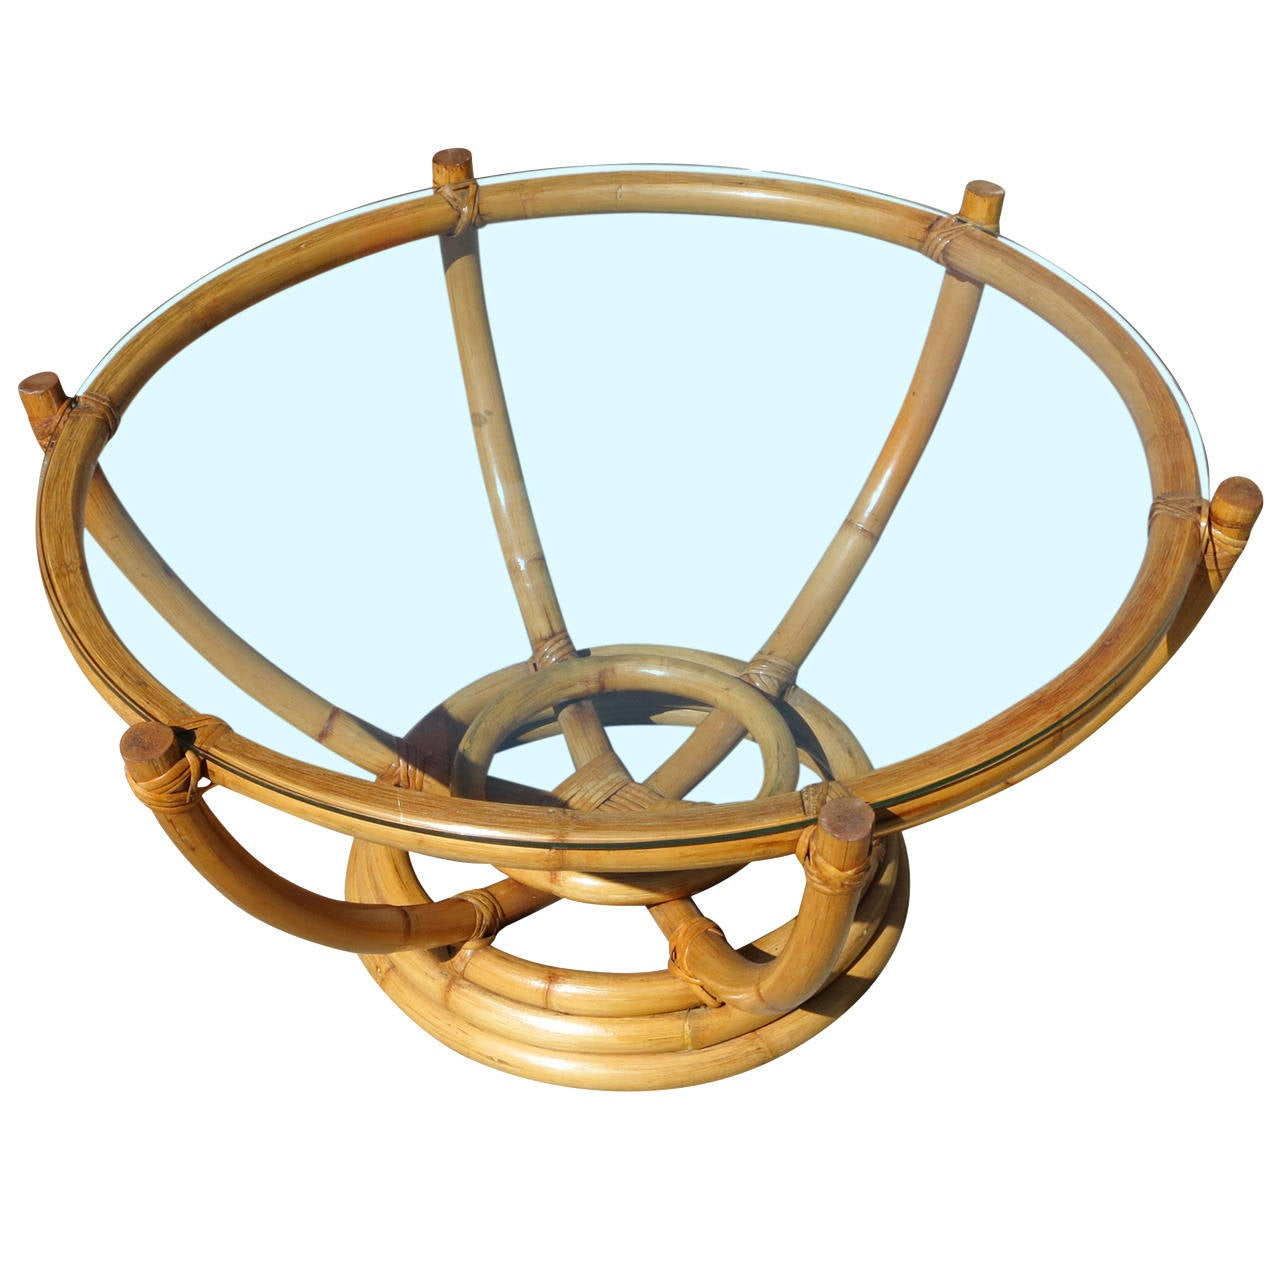 Round Wicker Coffee Table Glass Top: Restored Six Pole Rattan Coffee Table With Floating Glass